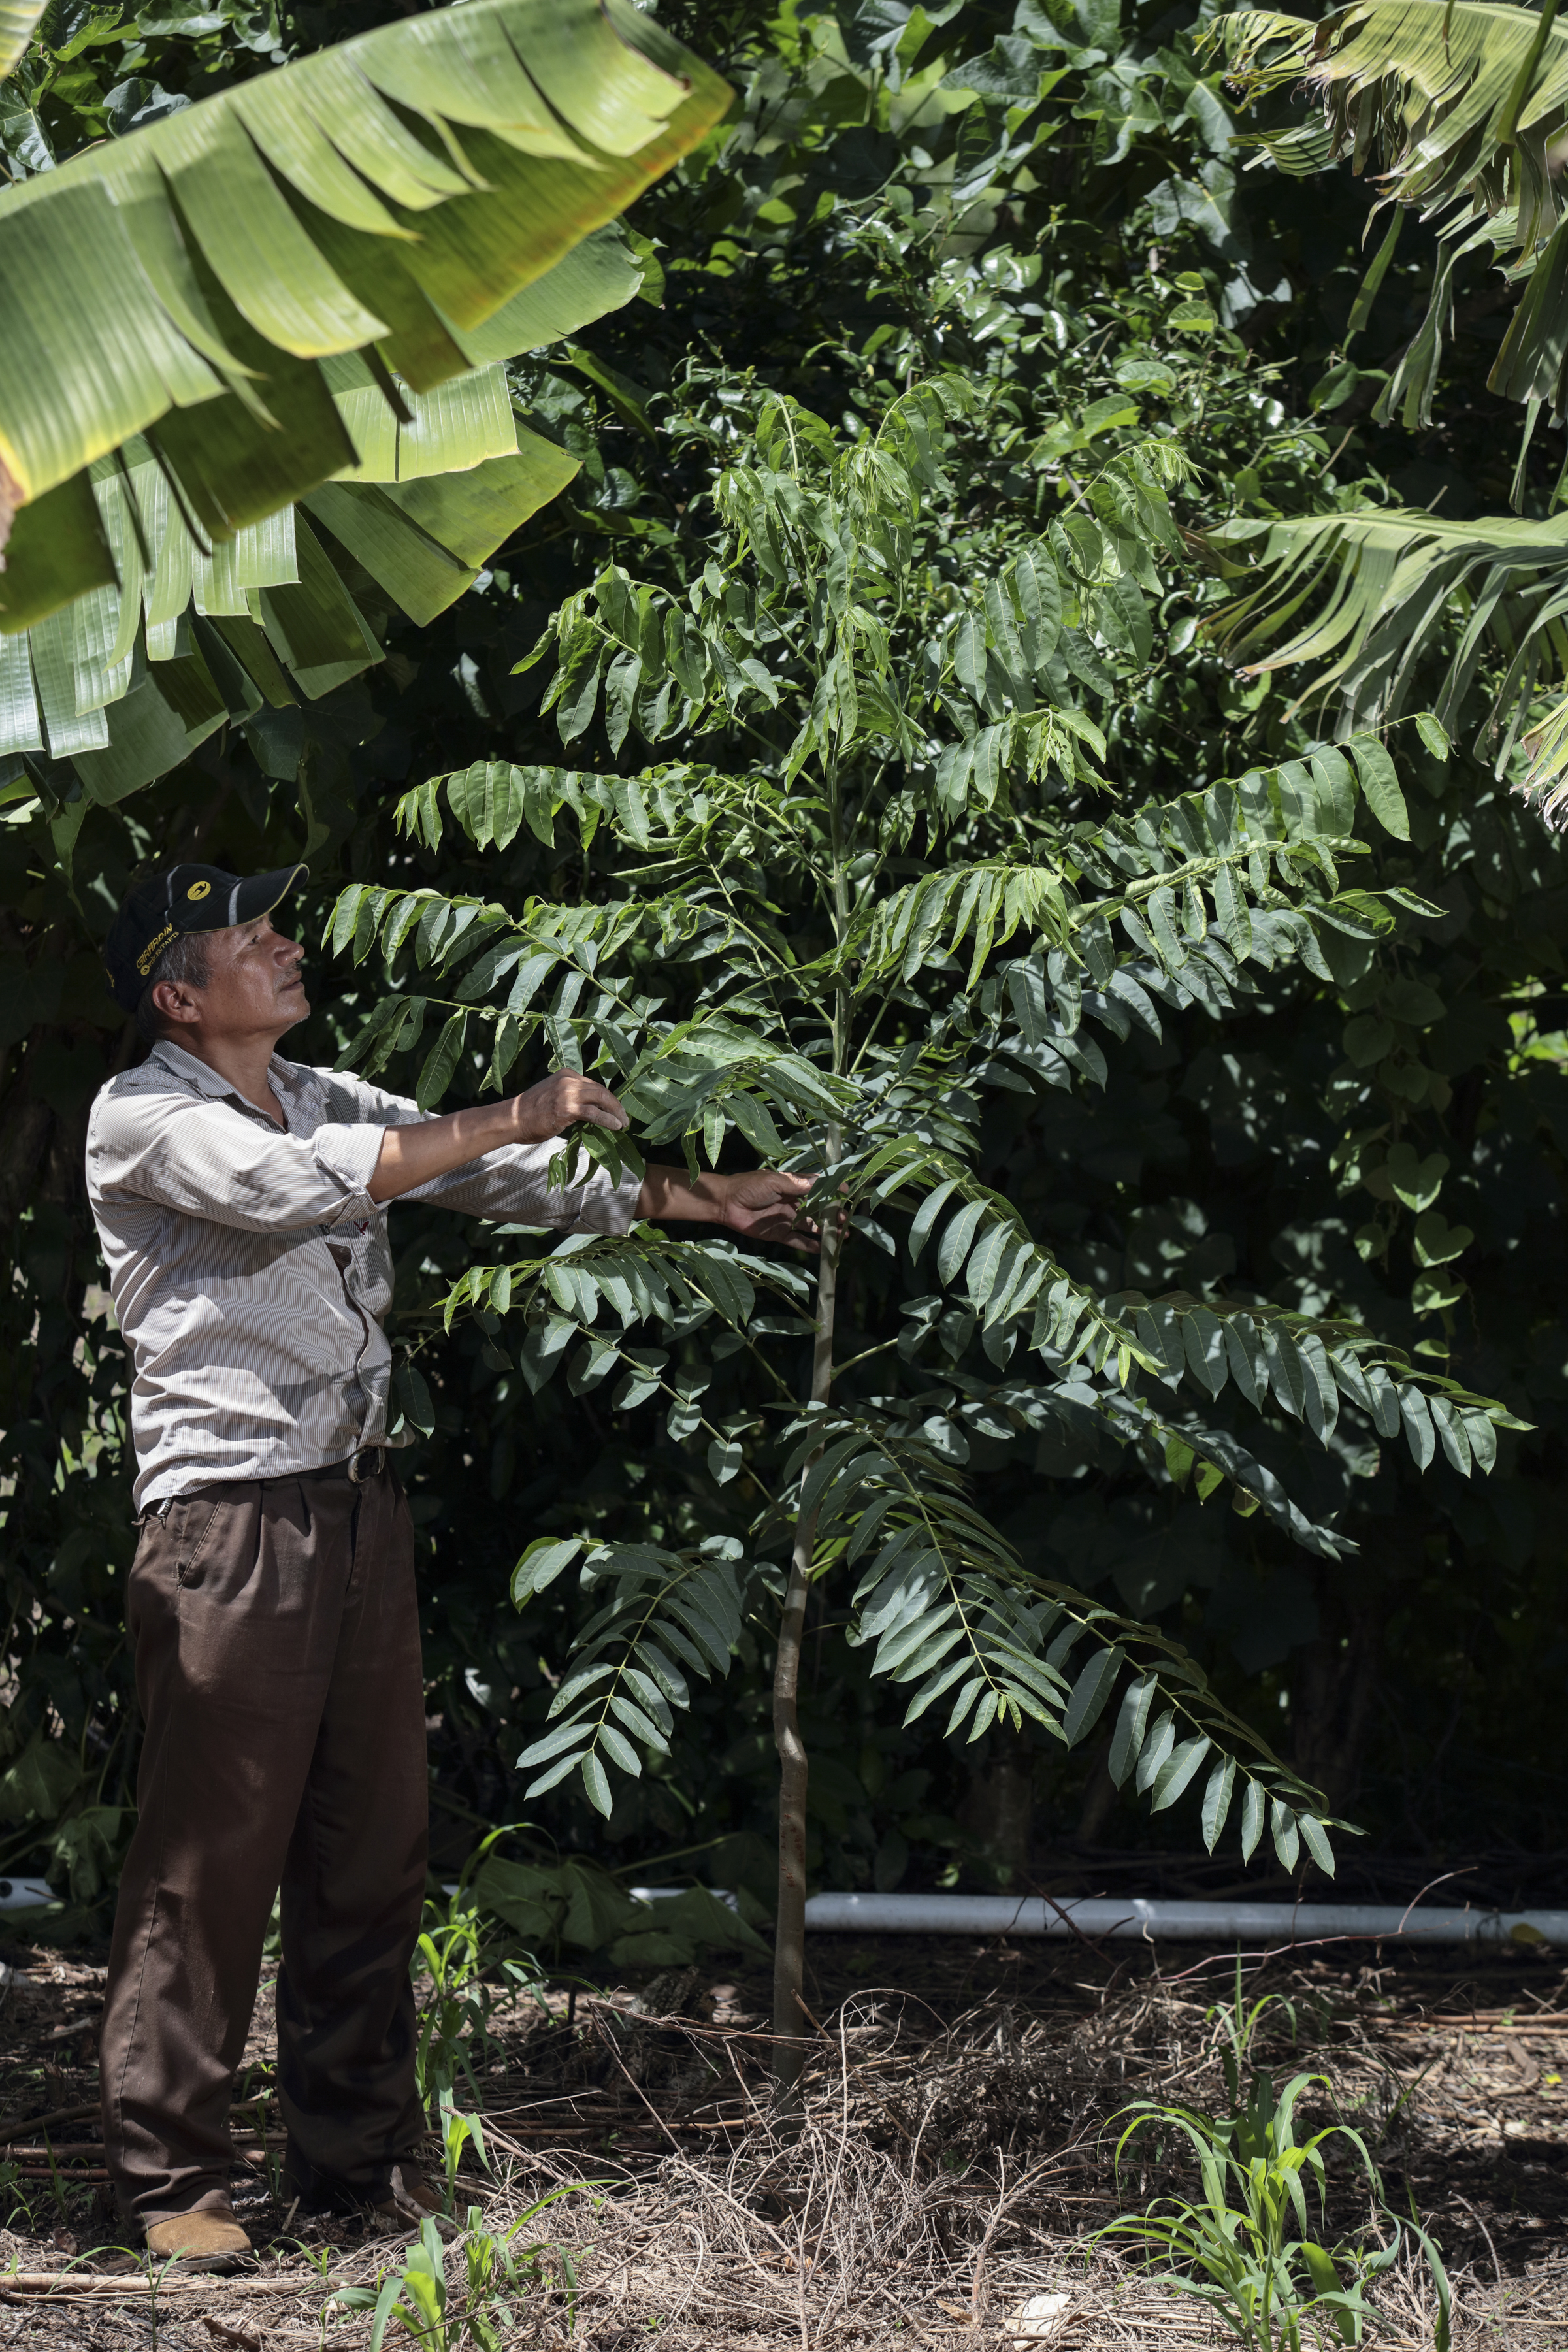 Simon Perez shows cedar trees he has planted with his cacao as part of an agro forestry system. Cedar trees also provide shade to the cacao. Photo by Oscar Leiva/Silverlight for CRS